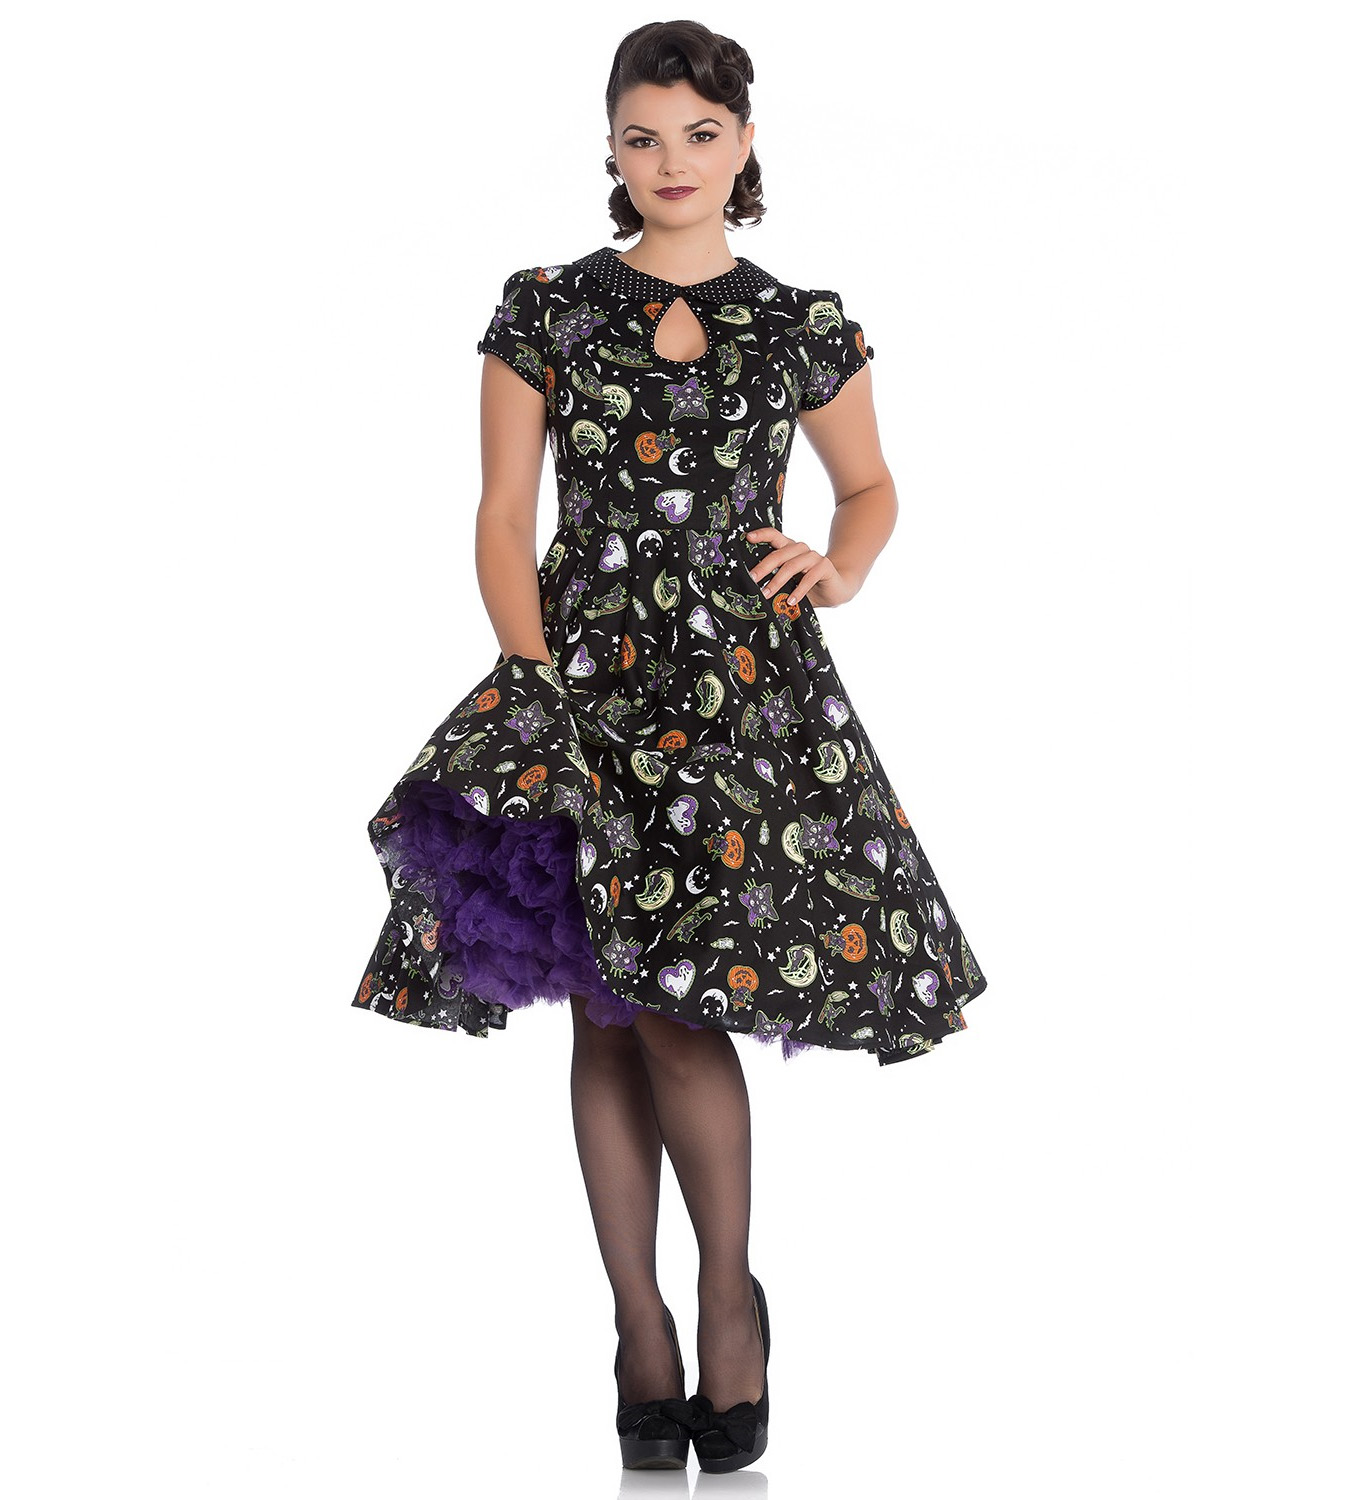 Hell-Bunny-50s-Black-Pin-Up-Dress-Horror-Witchy-SALEM-Halloween-All-Sizes thumbnail 29